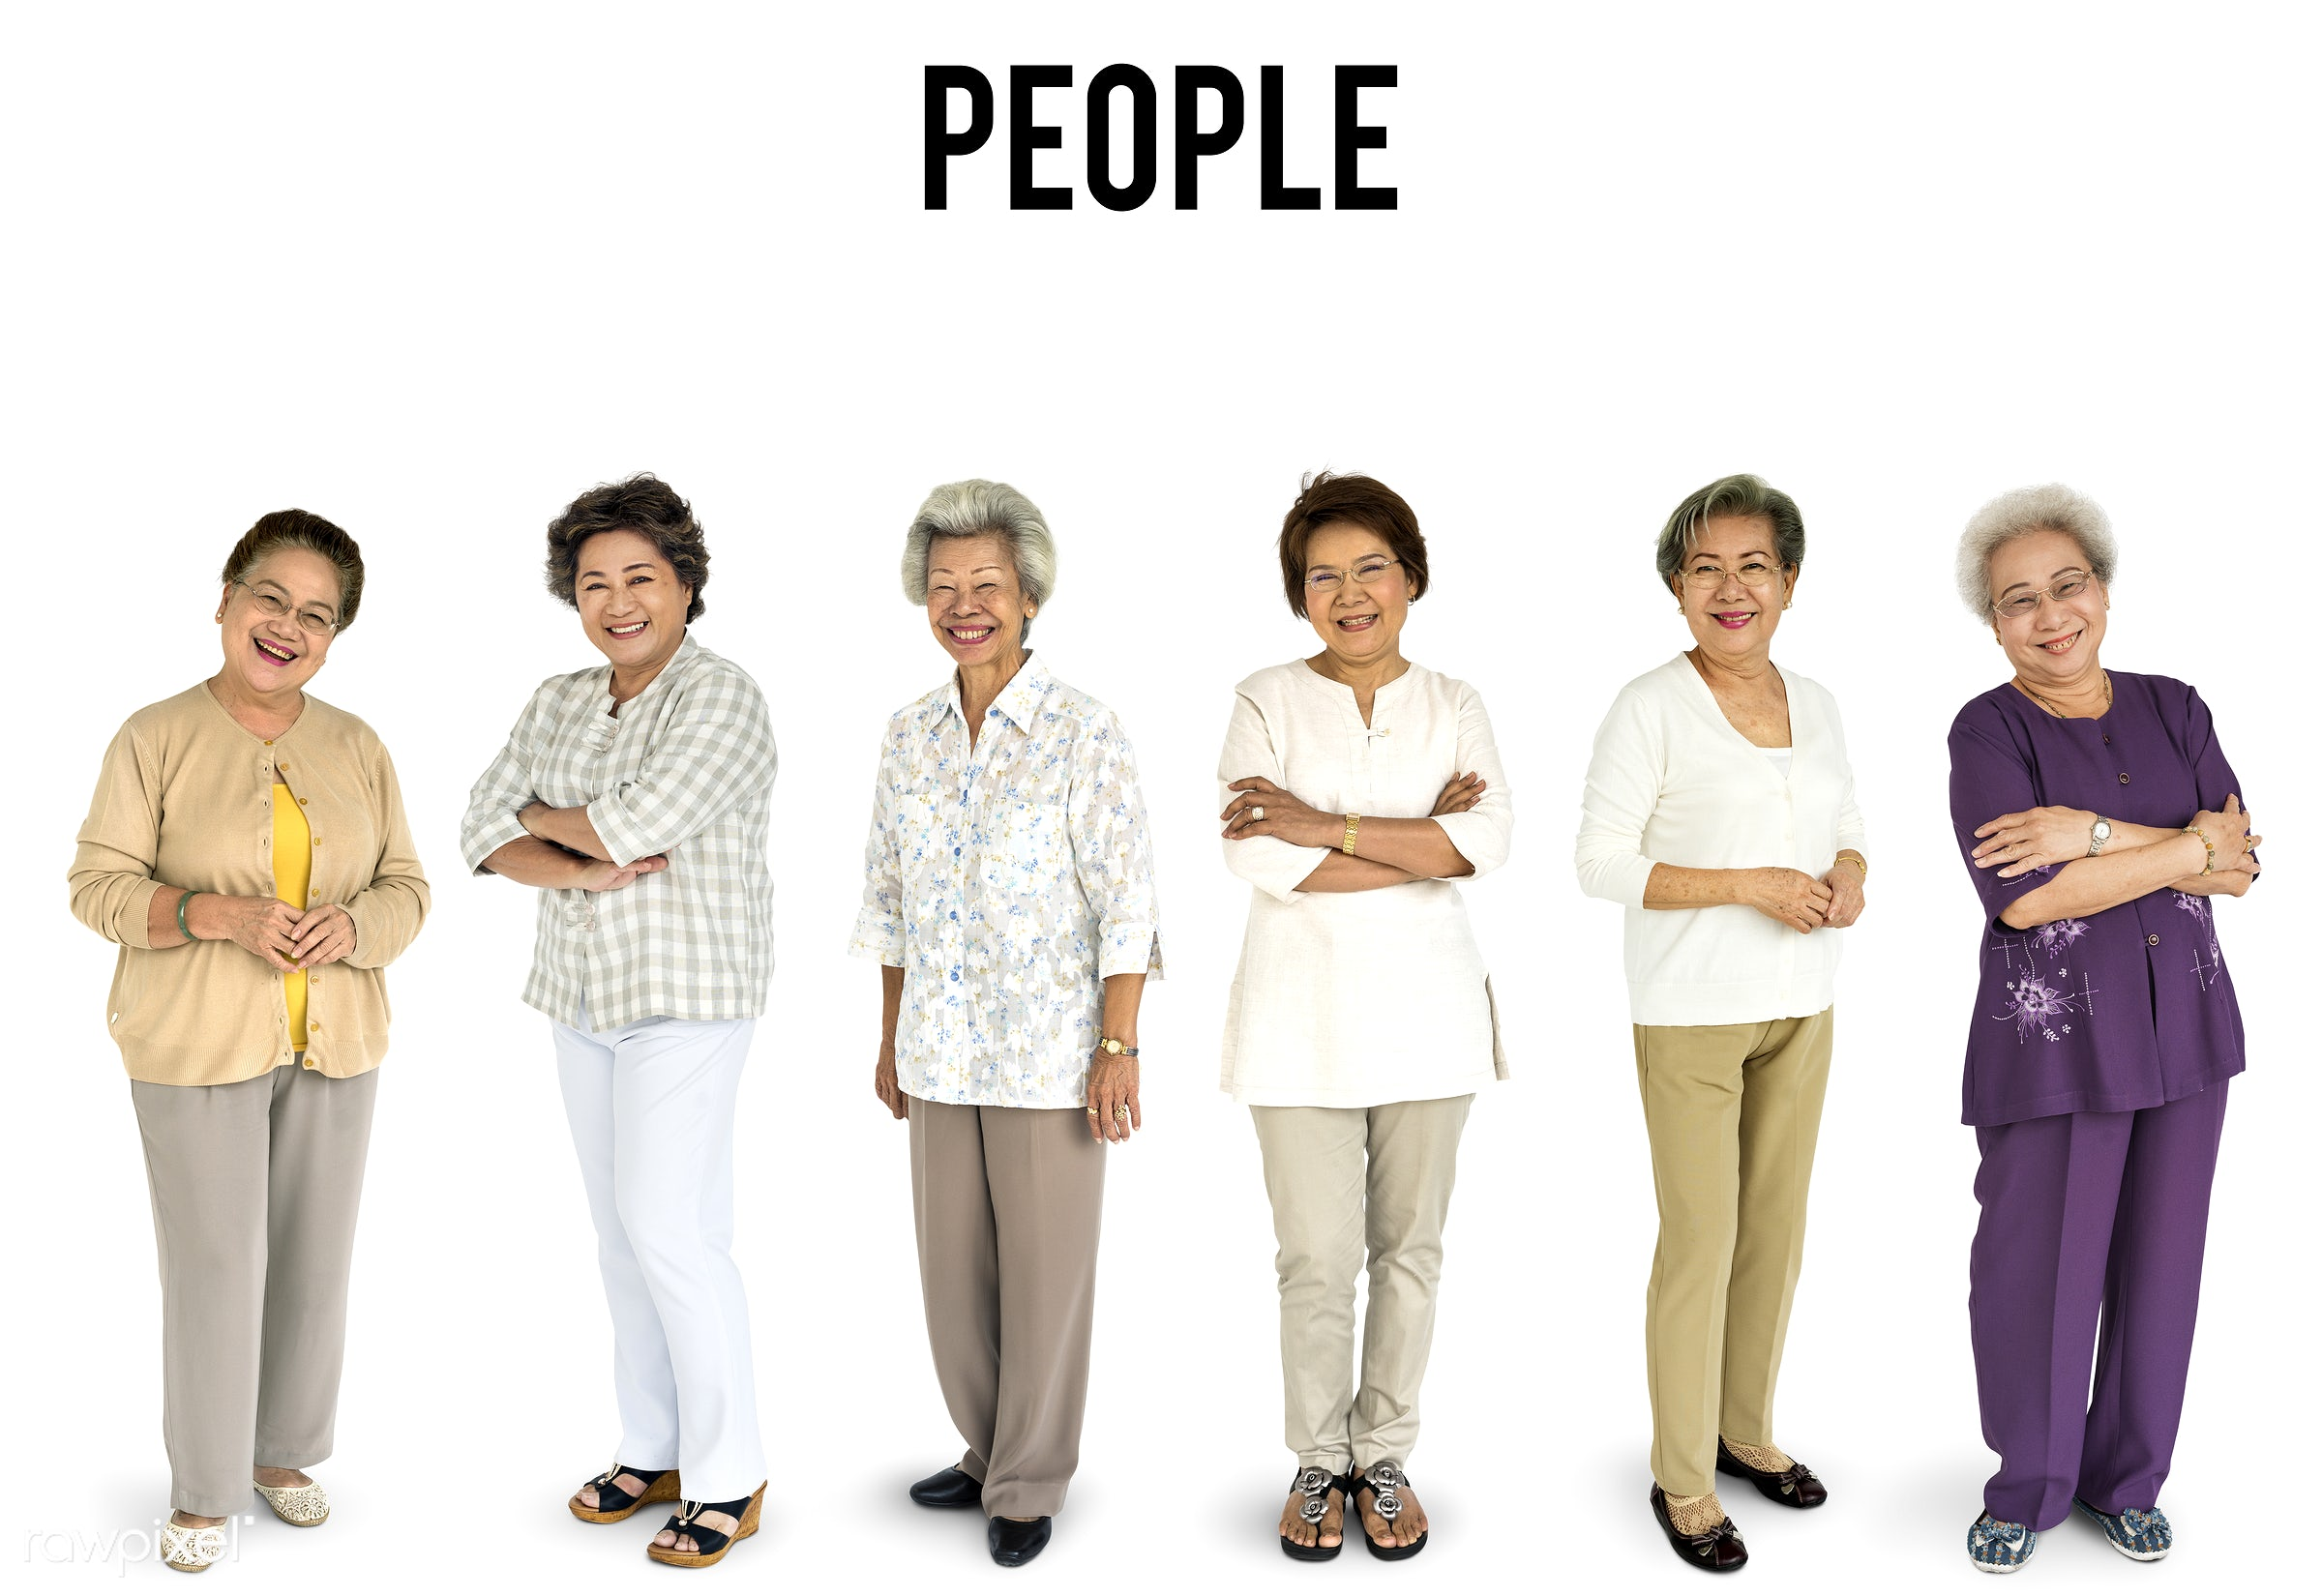 Diverse people set - studio, old, person, diverse, set, retired, retire, collection, people, together, asian, retirement,...